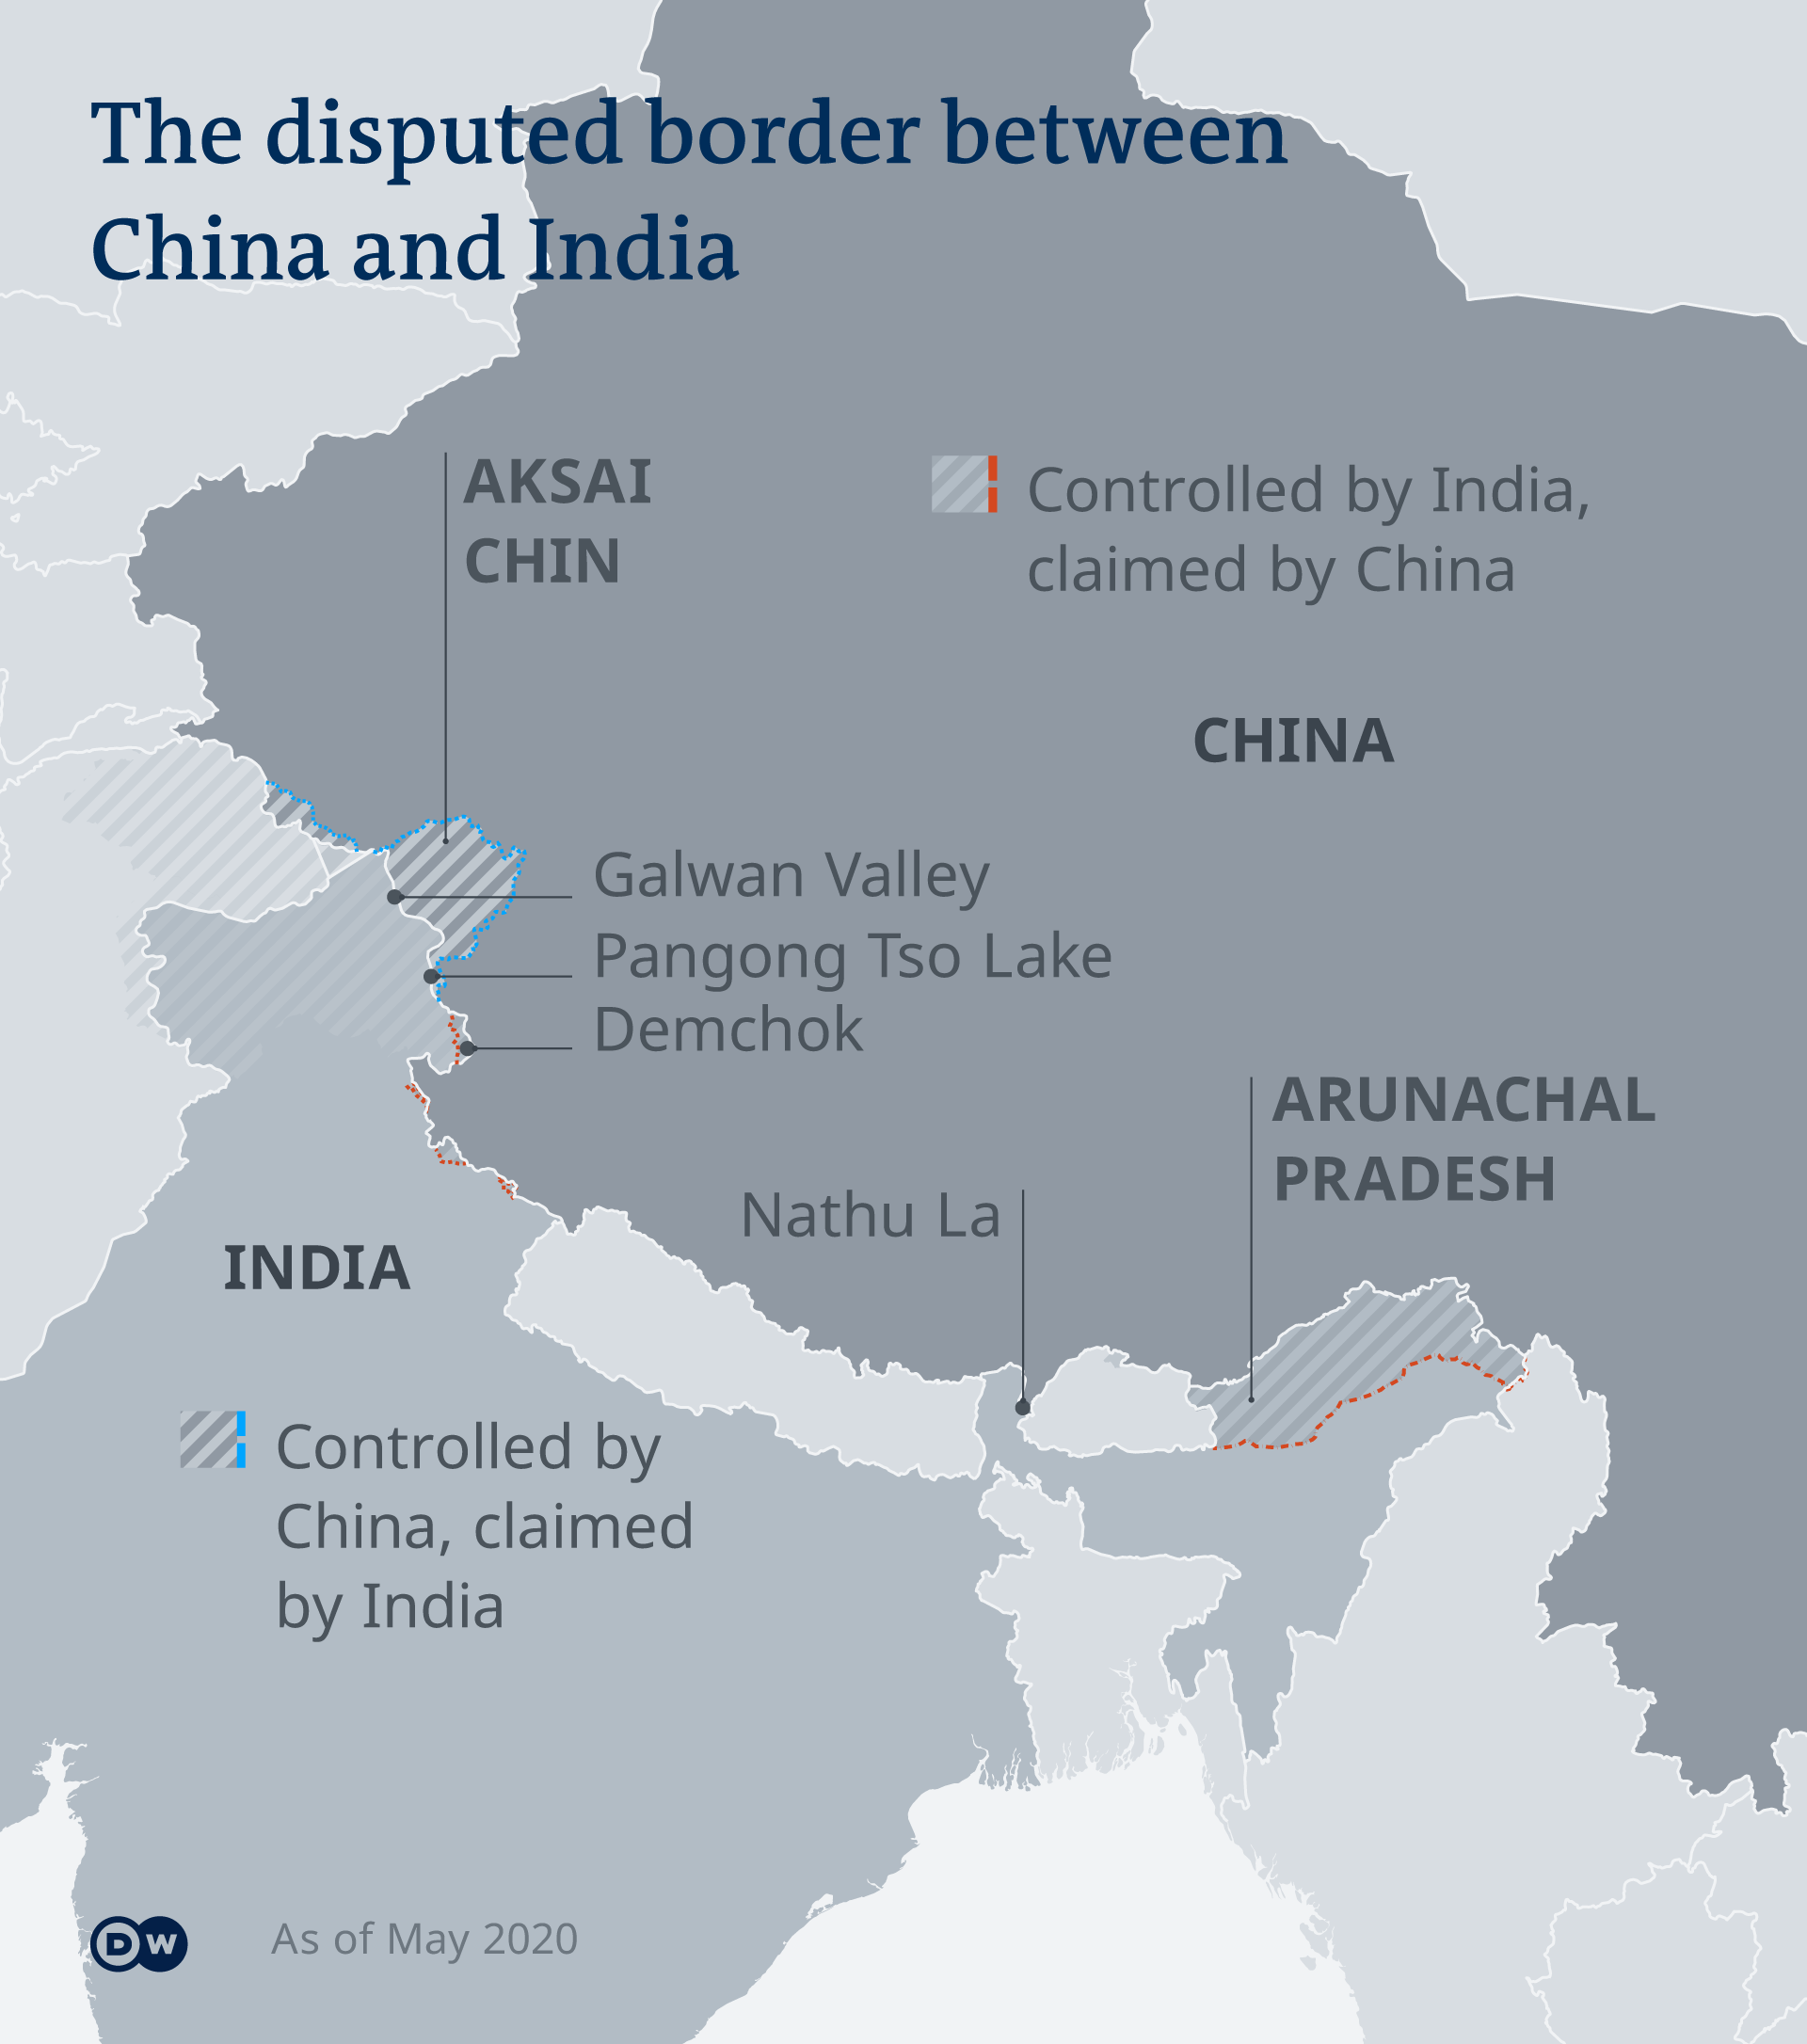 Infographic showing the contested border region between China and India